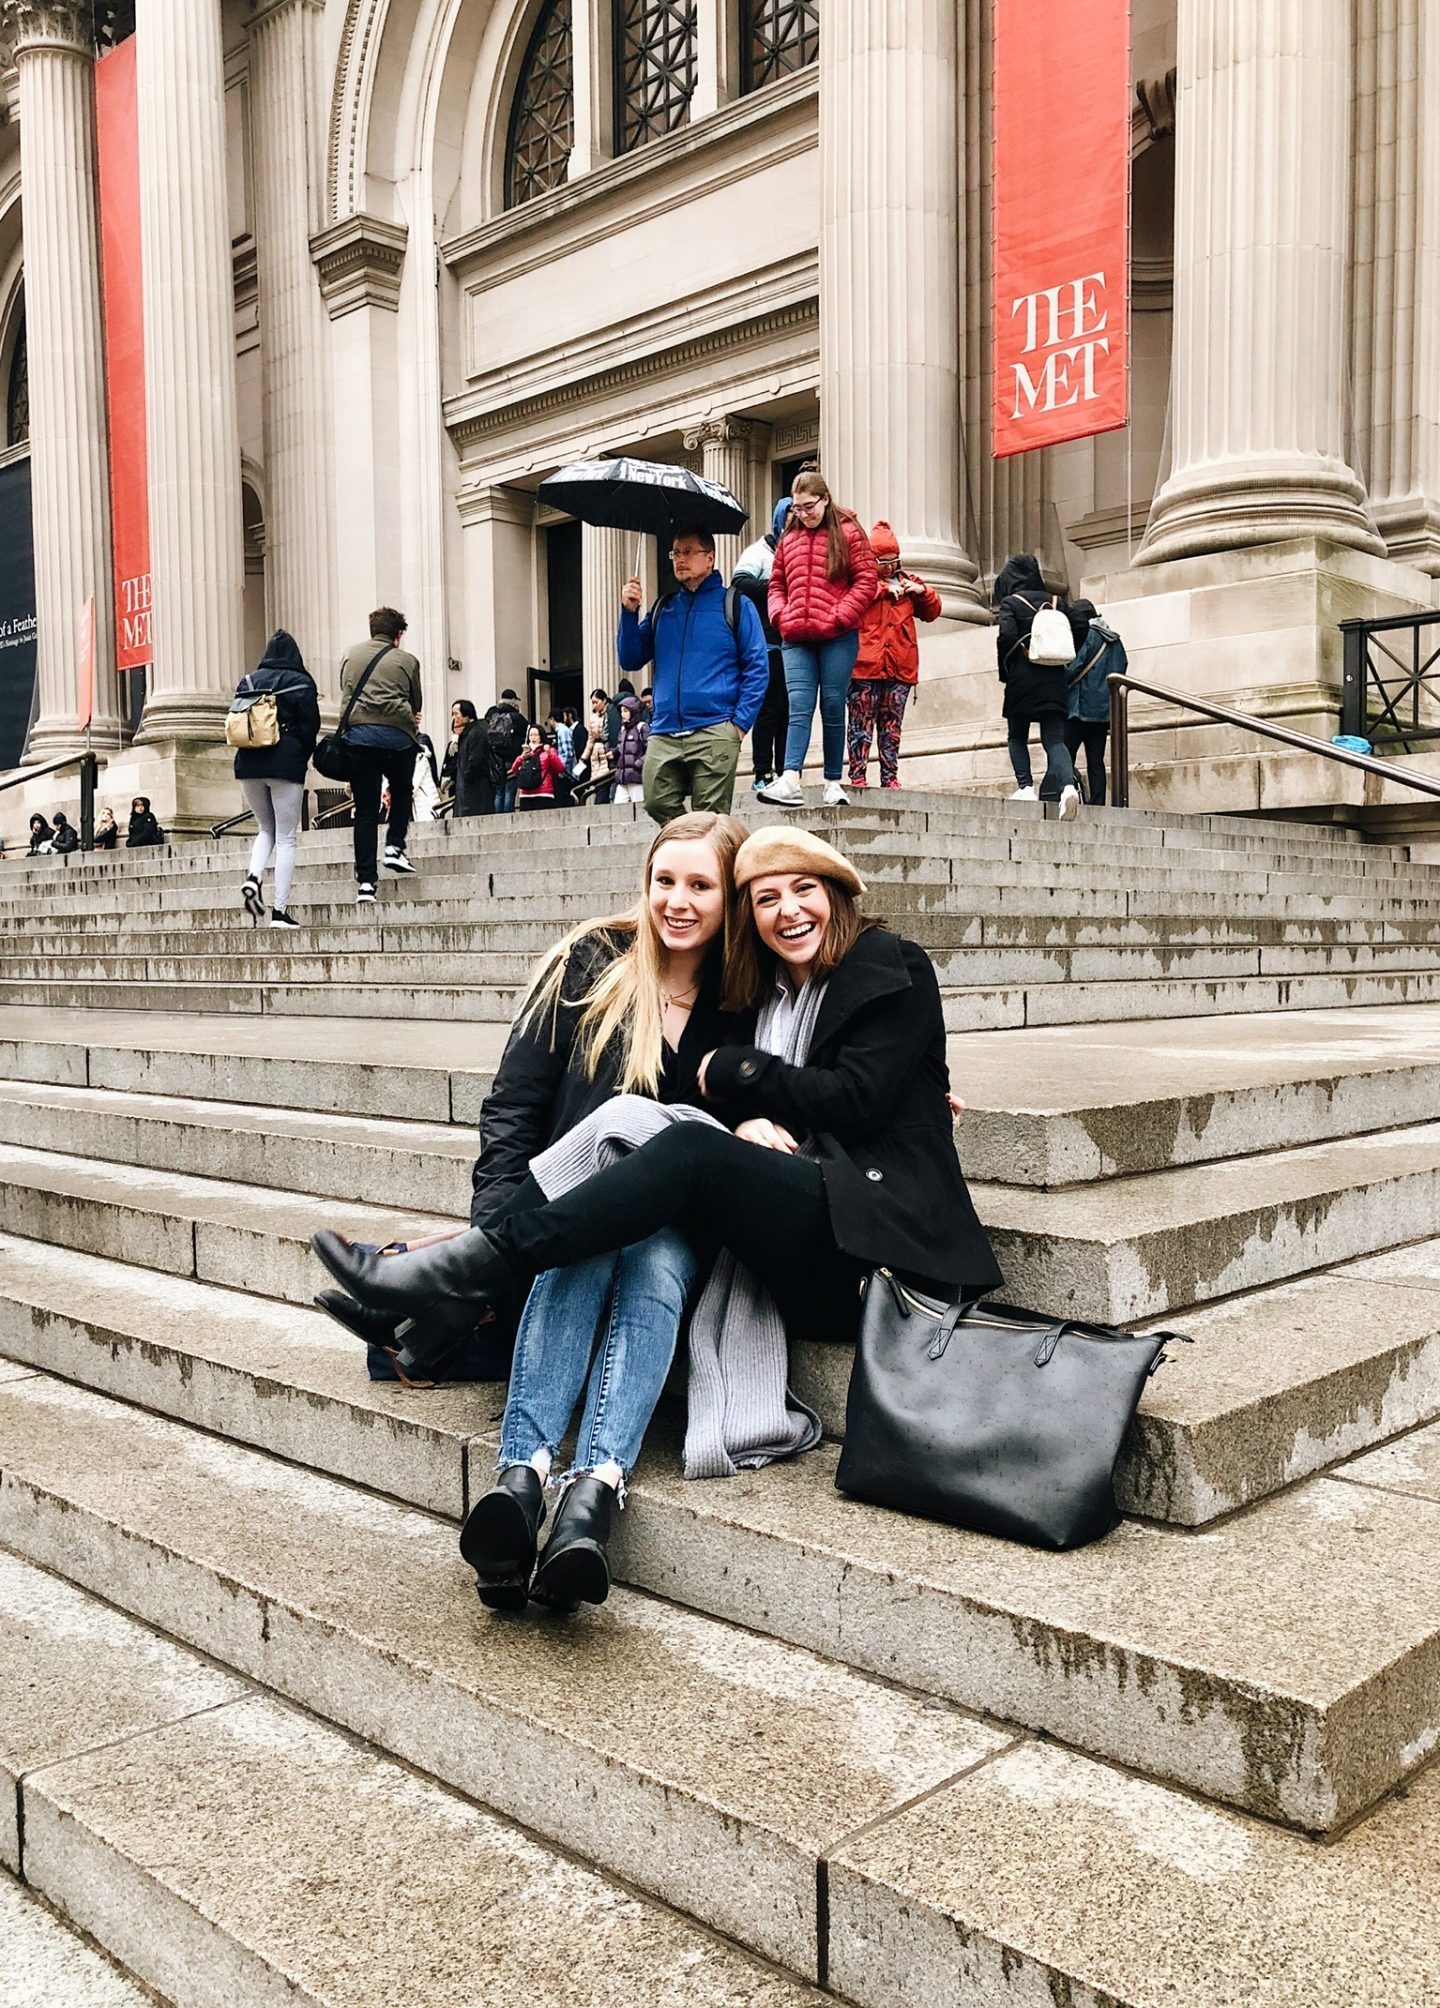 Sitting on the MET stairs in New York City!